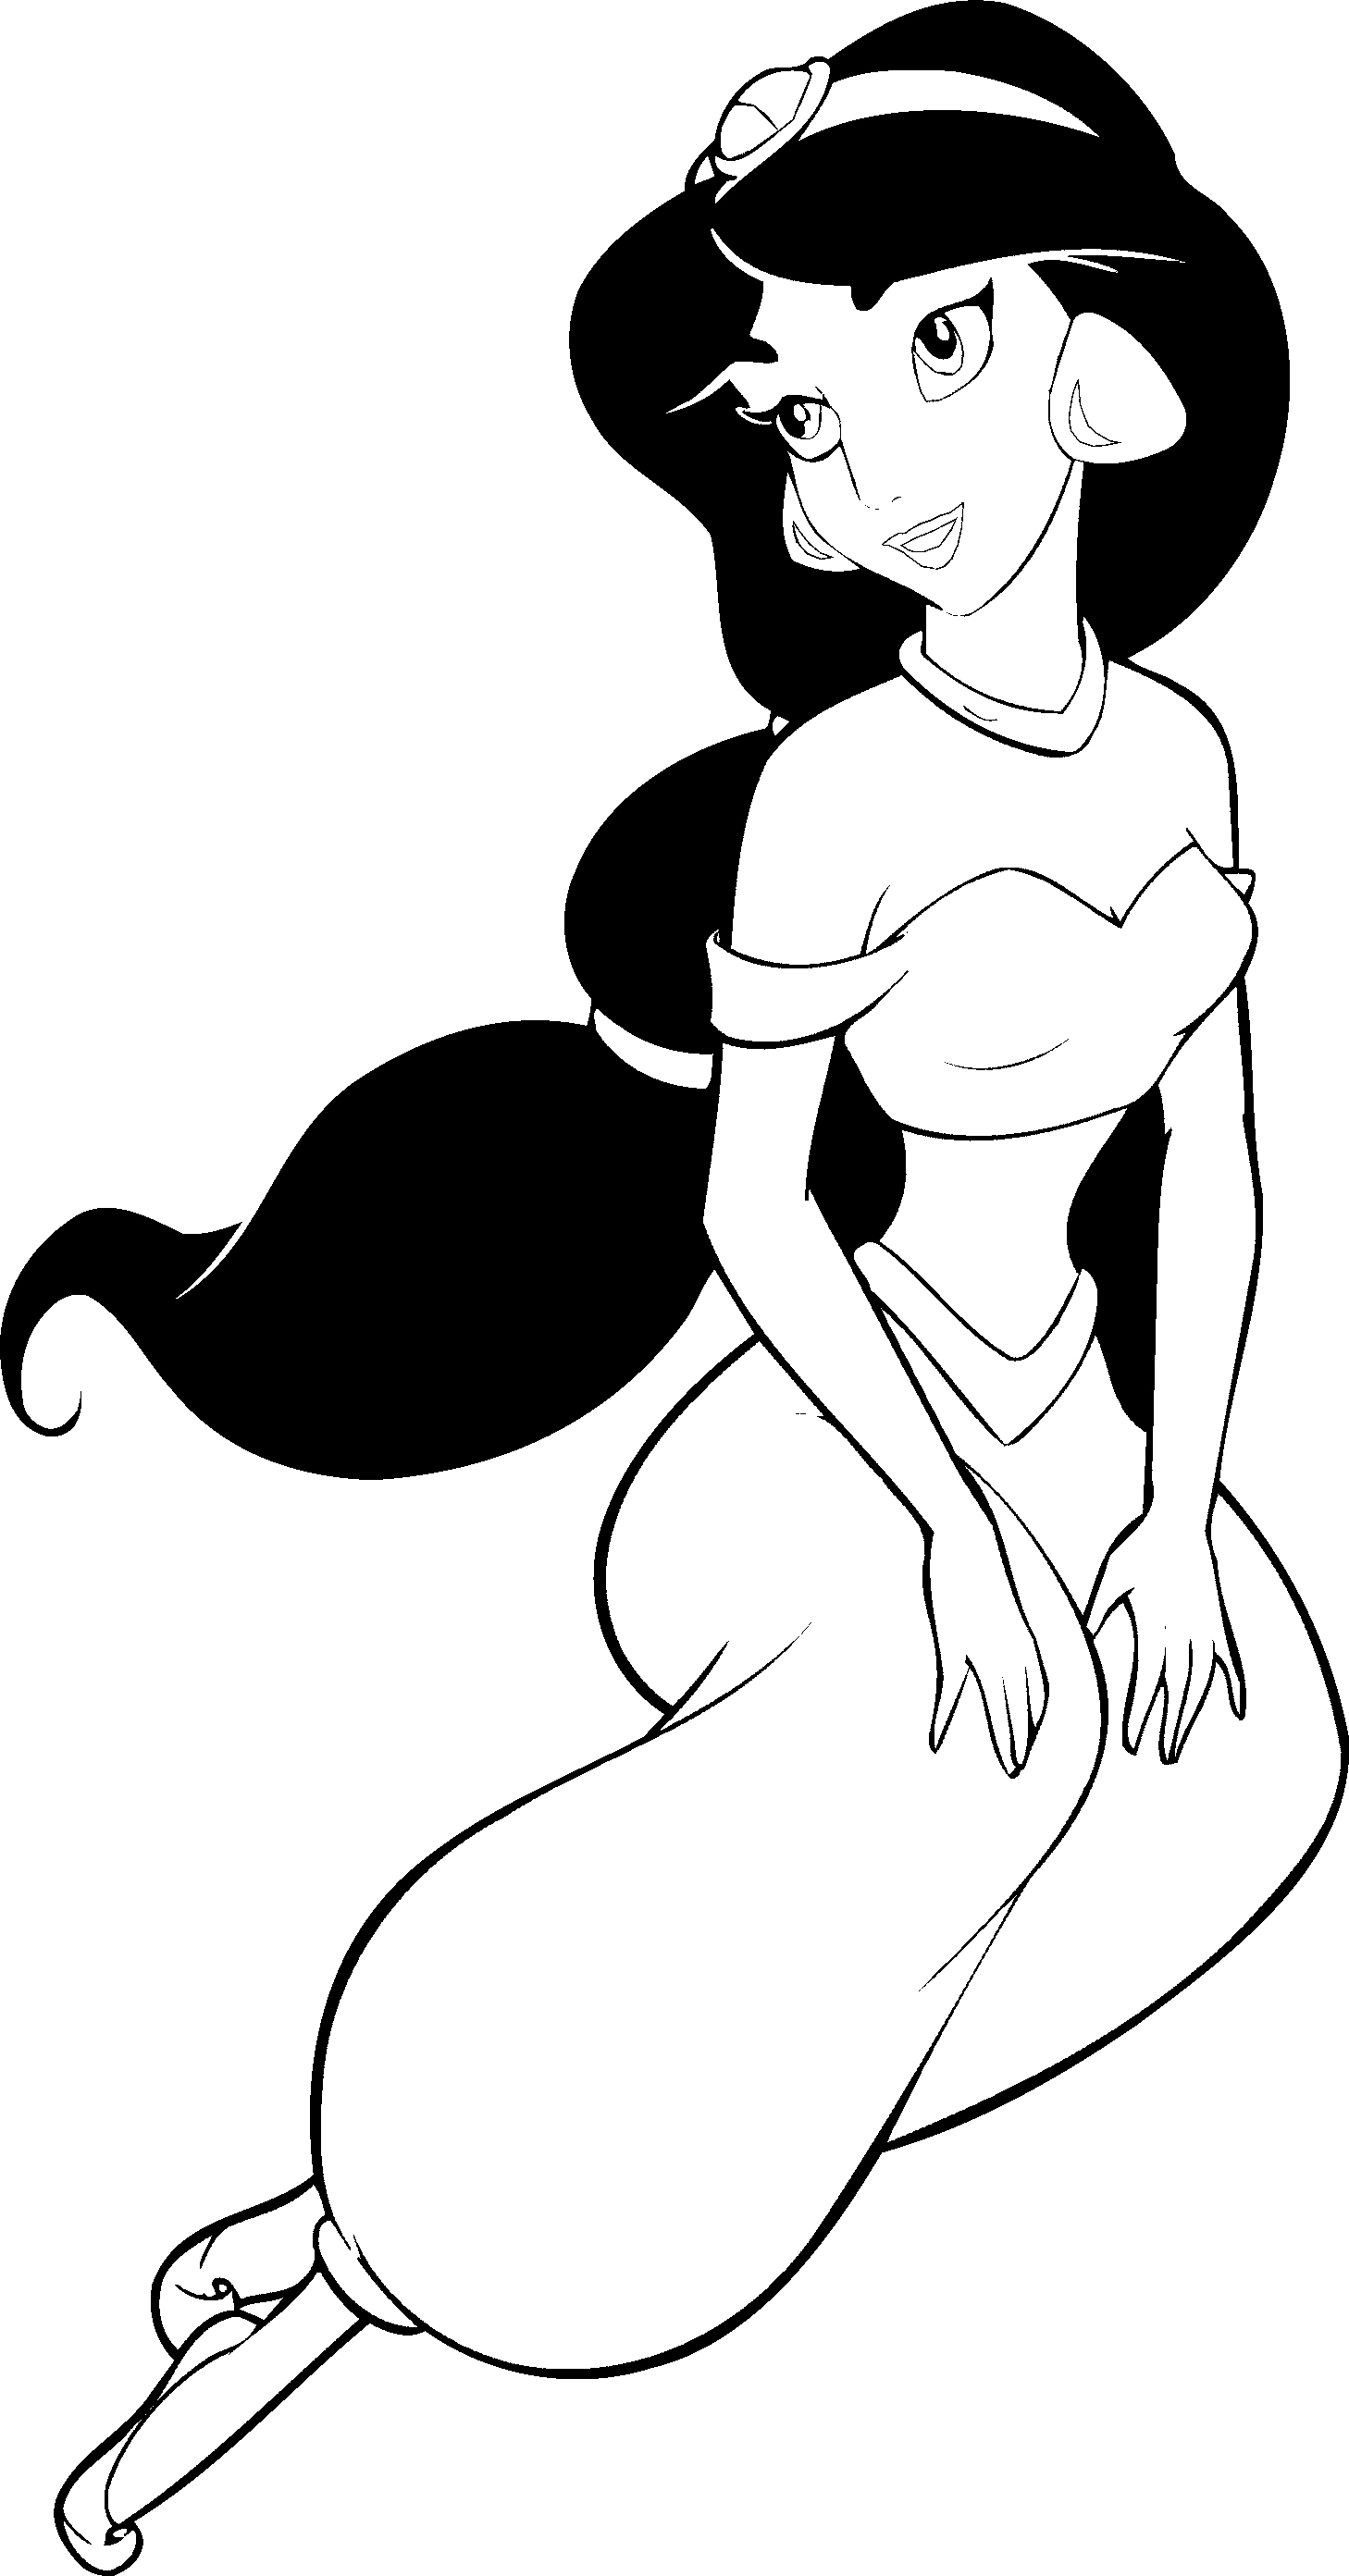 Disney princesses jasmine coloring sylvia 39 s thoughts for Jasmine the princess coloring pages